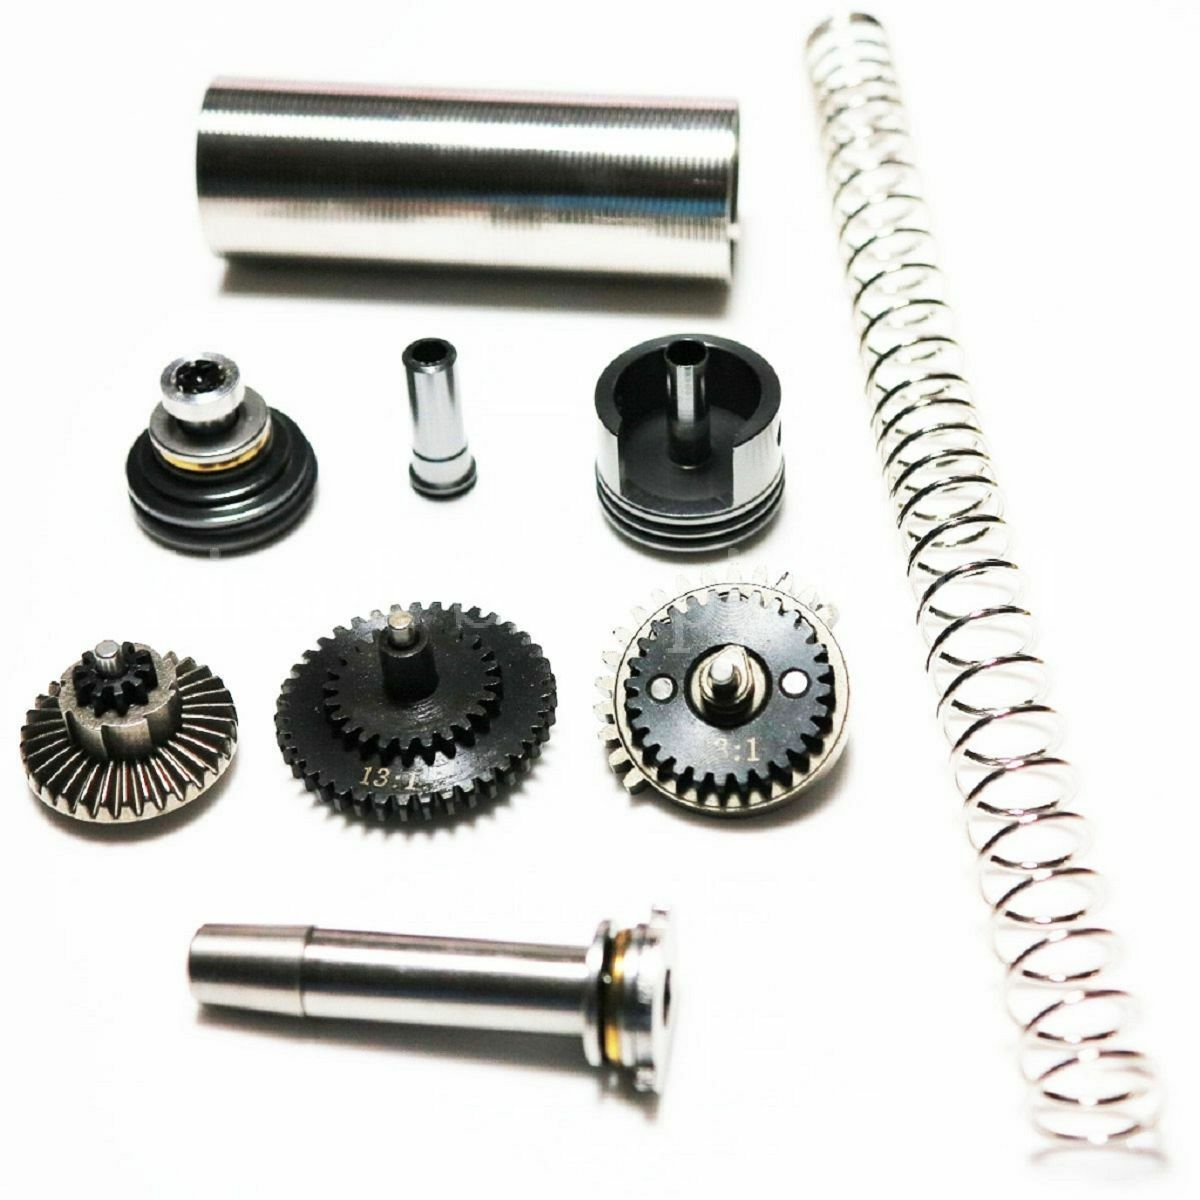 Airsoft Army Force M-Series Low Noise High Torque 13 1 Gear Tune-Up Set